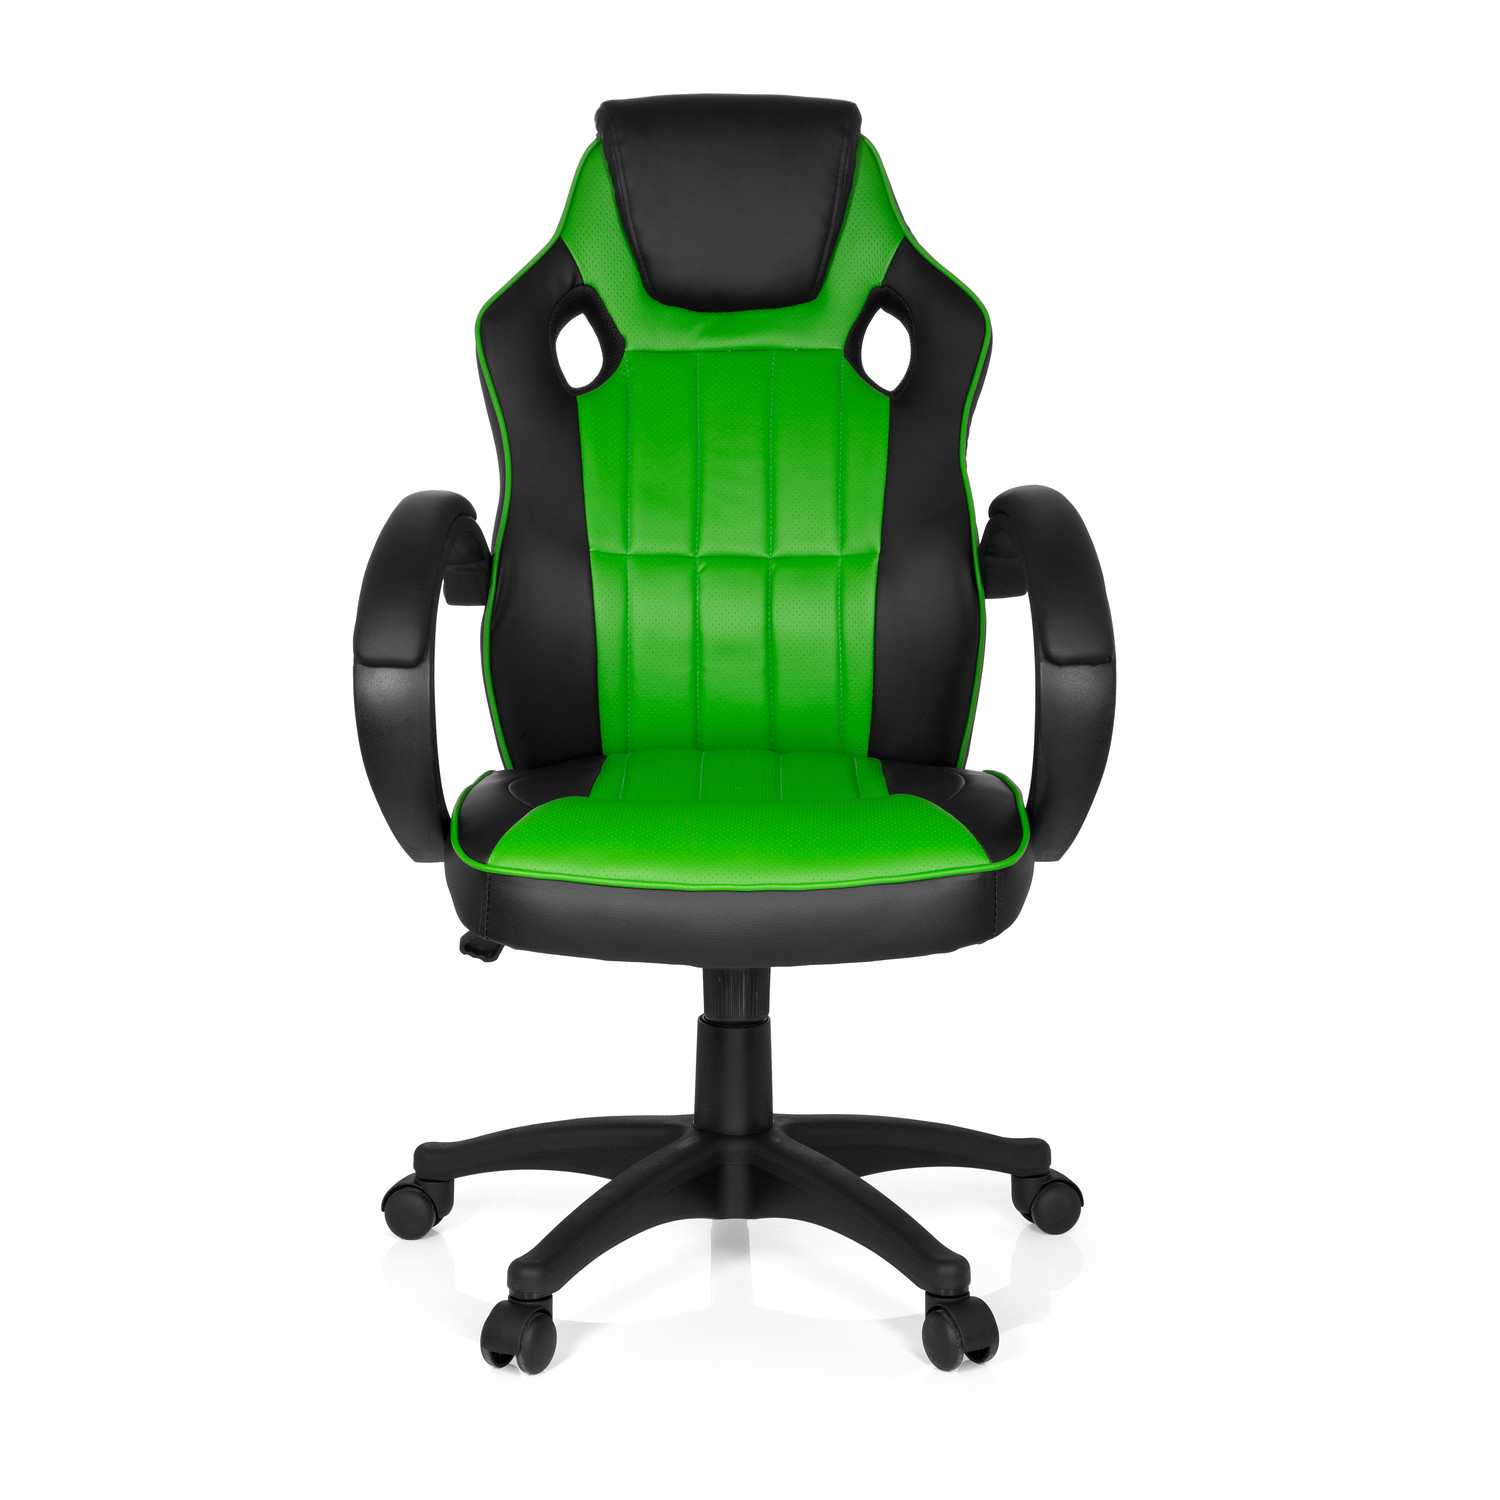 Silla gamer deportiva RACER GAMING PRO exclusivo diseo